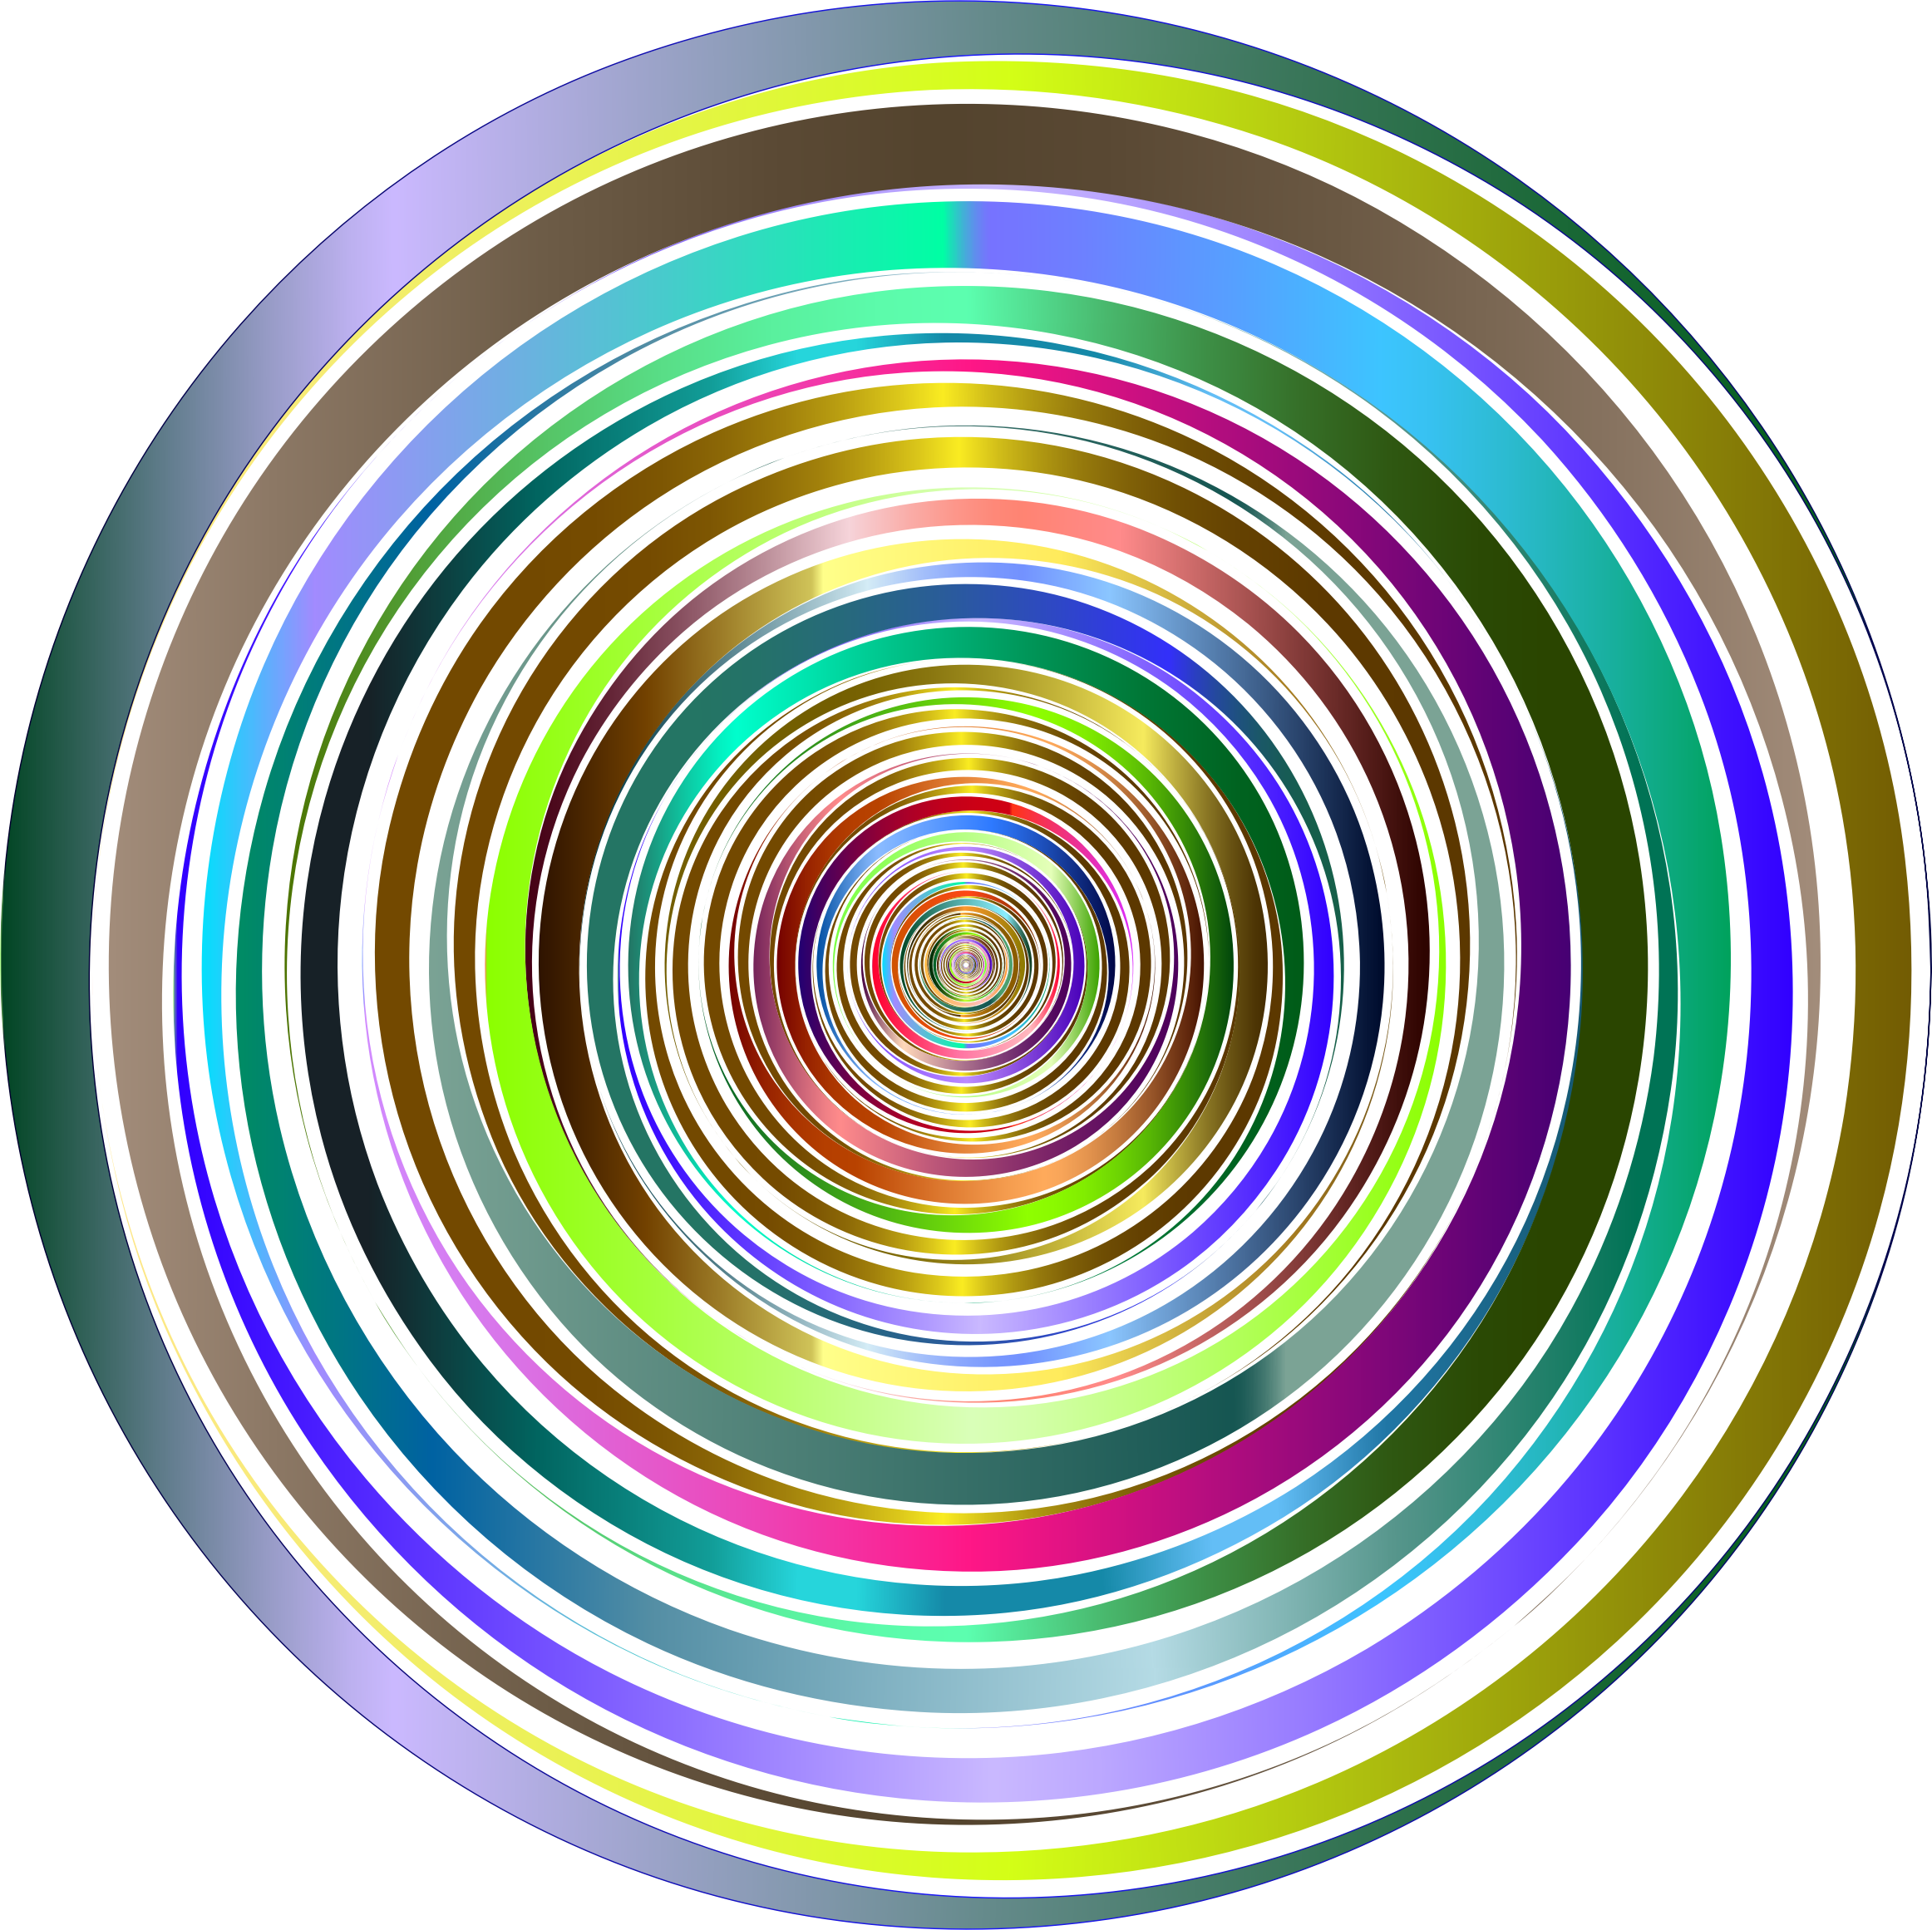 Prismatic Abstract Vortex 18 2 No Background by GDJ